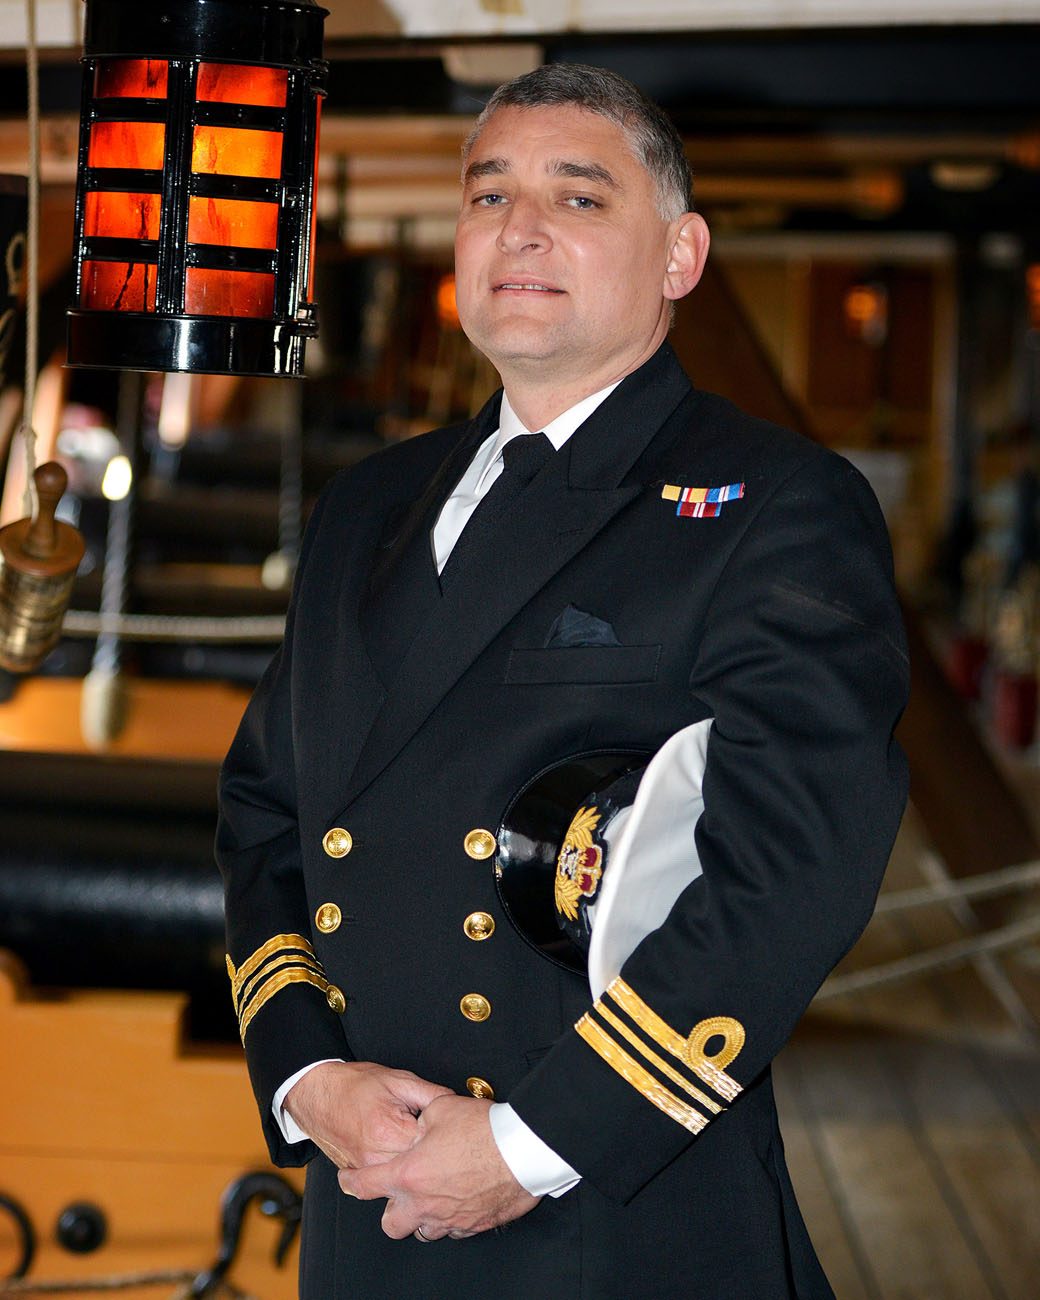 lt cdr bj smith appointed 101st commanding officer of hms